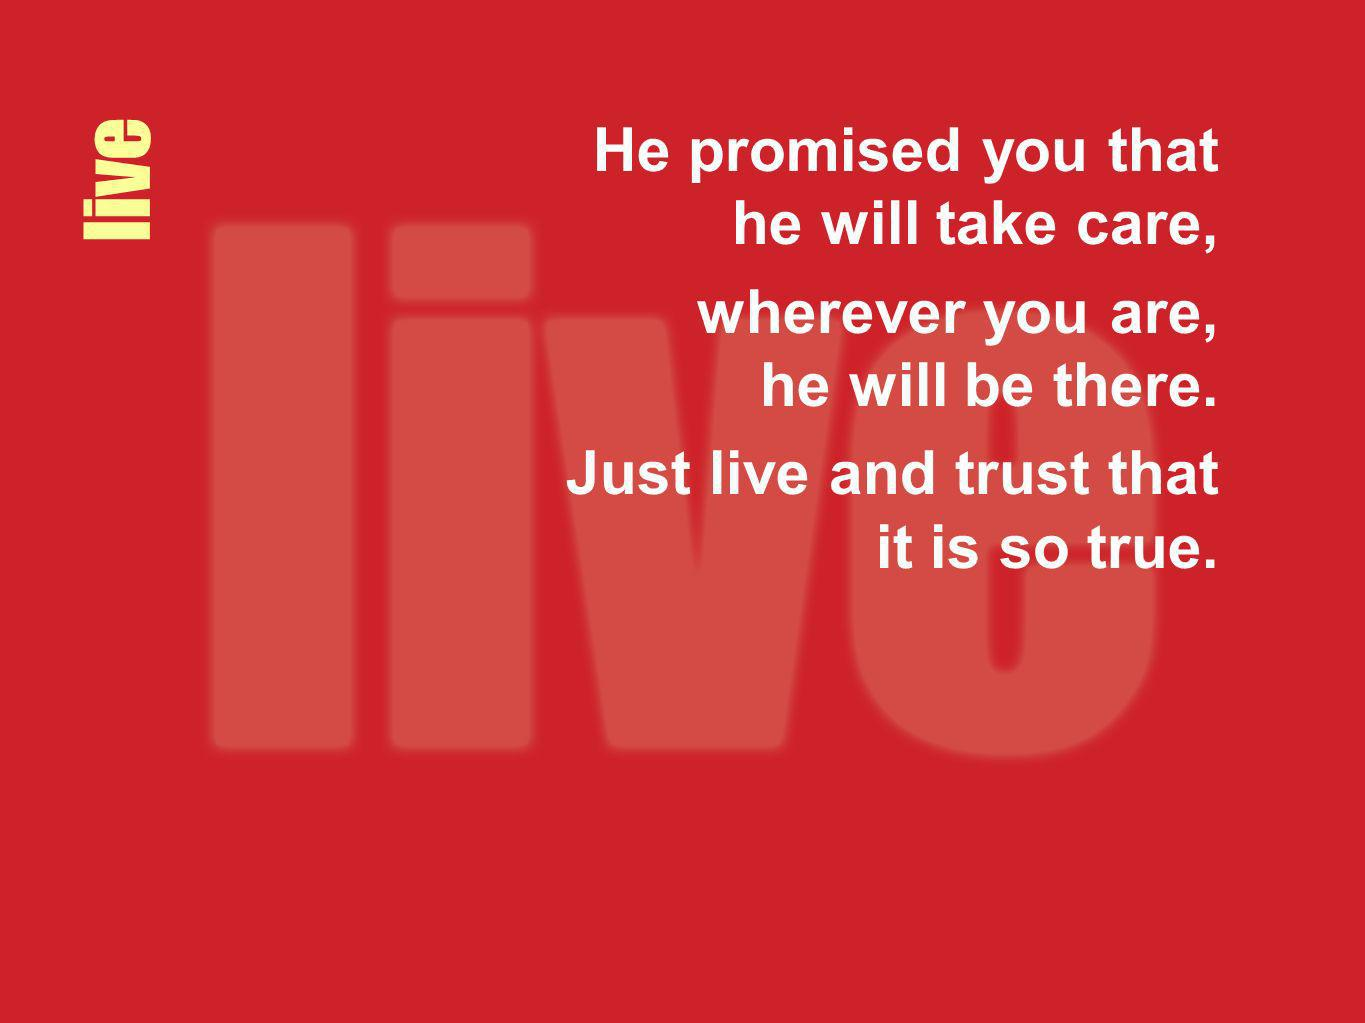 live He promised you that he will take care,